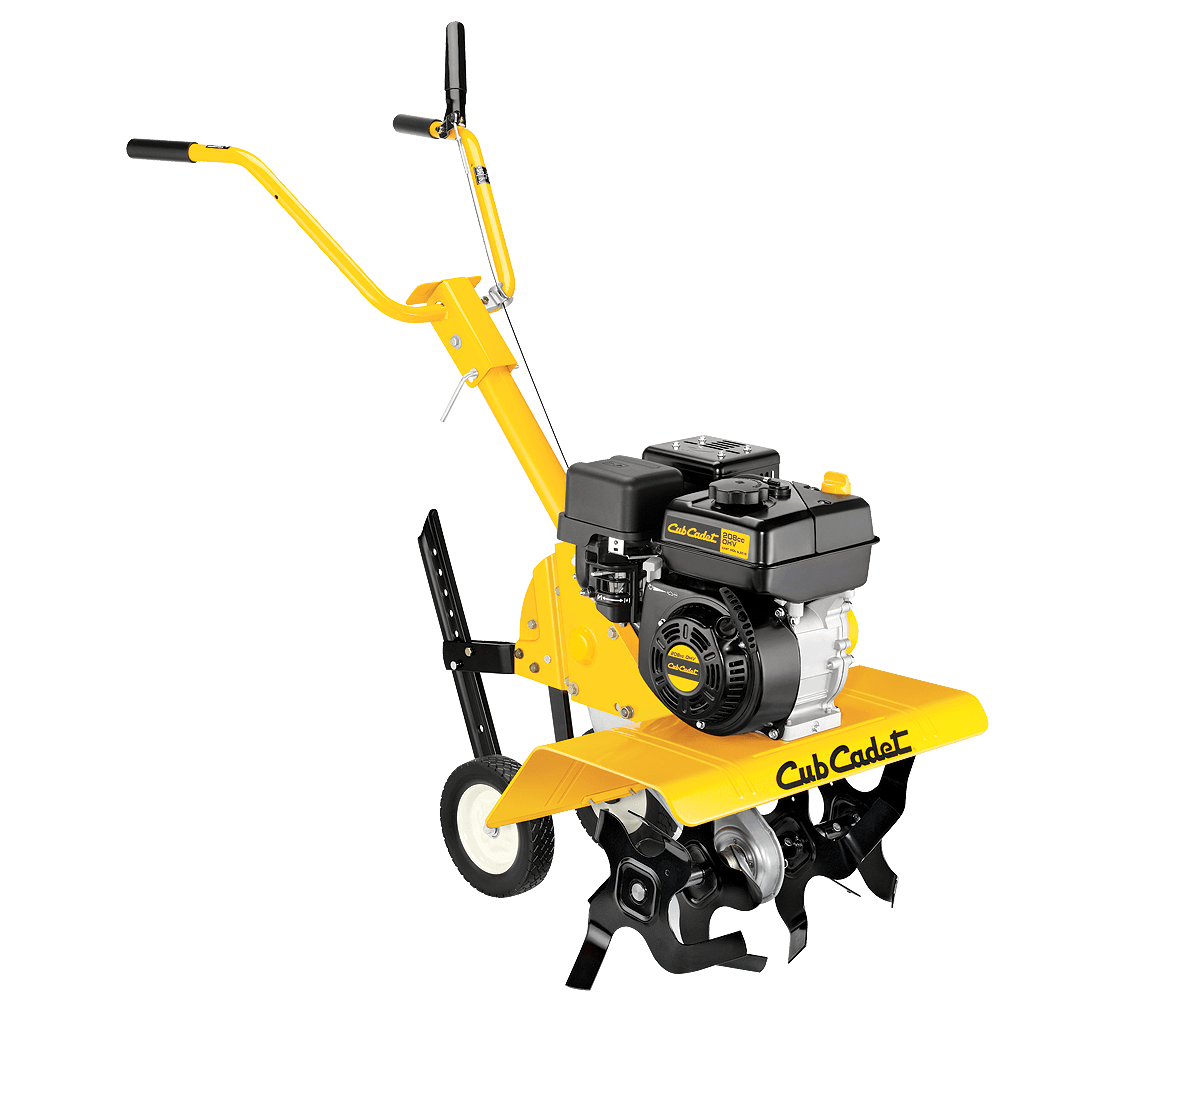 2018 Cub Cadet FT 24 Garden Tiller in Inver Grove Heights, Minnesota